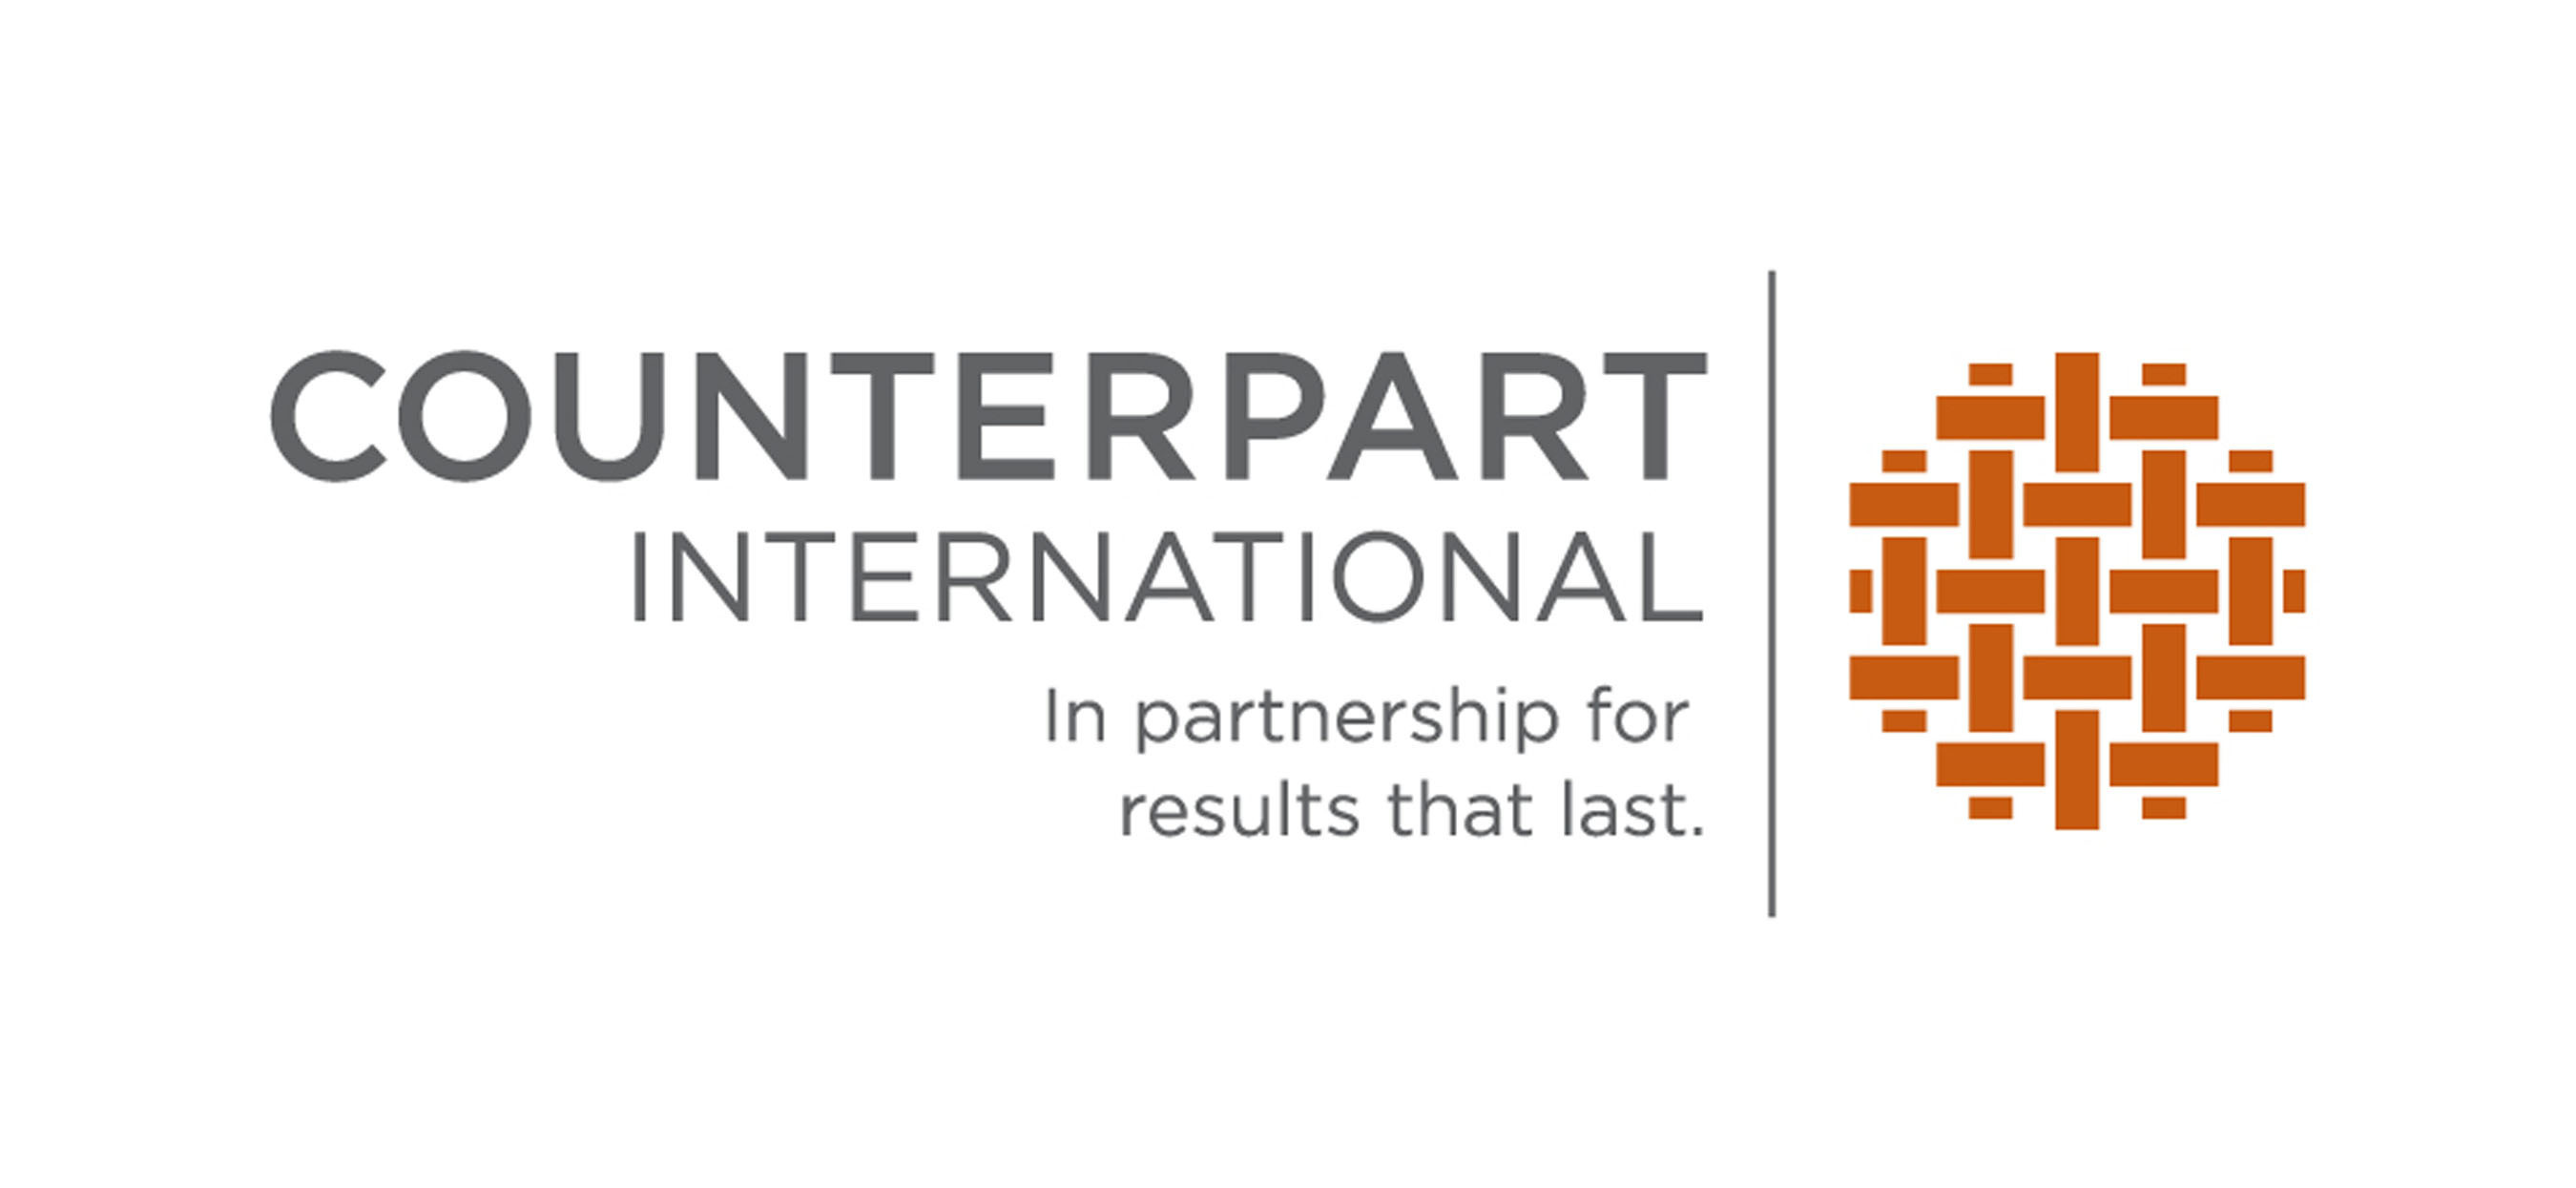 Counterpart International - Timor-Leste Office